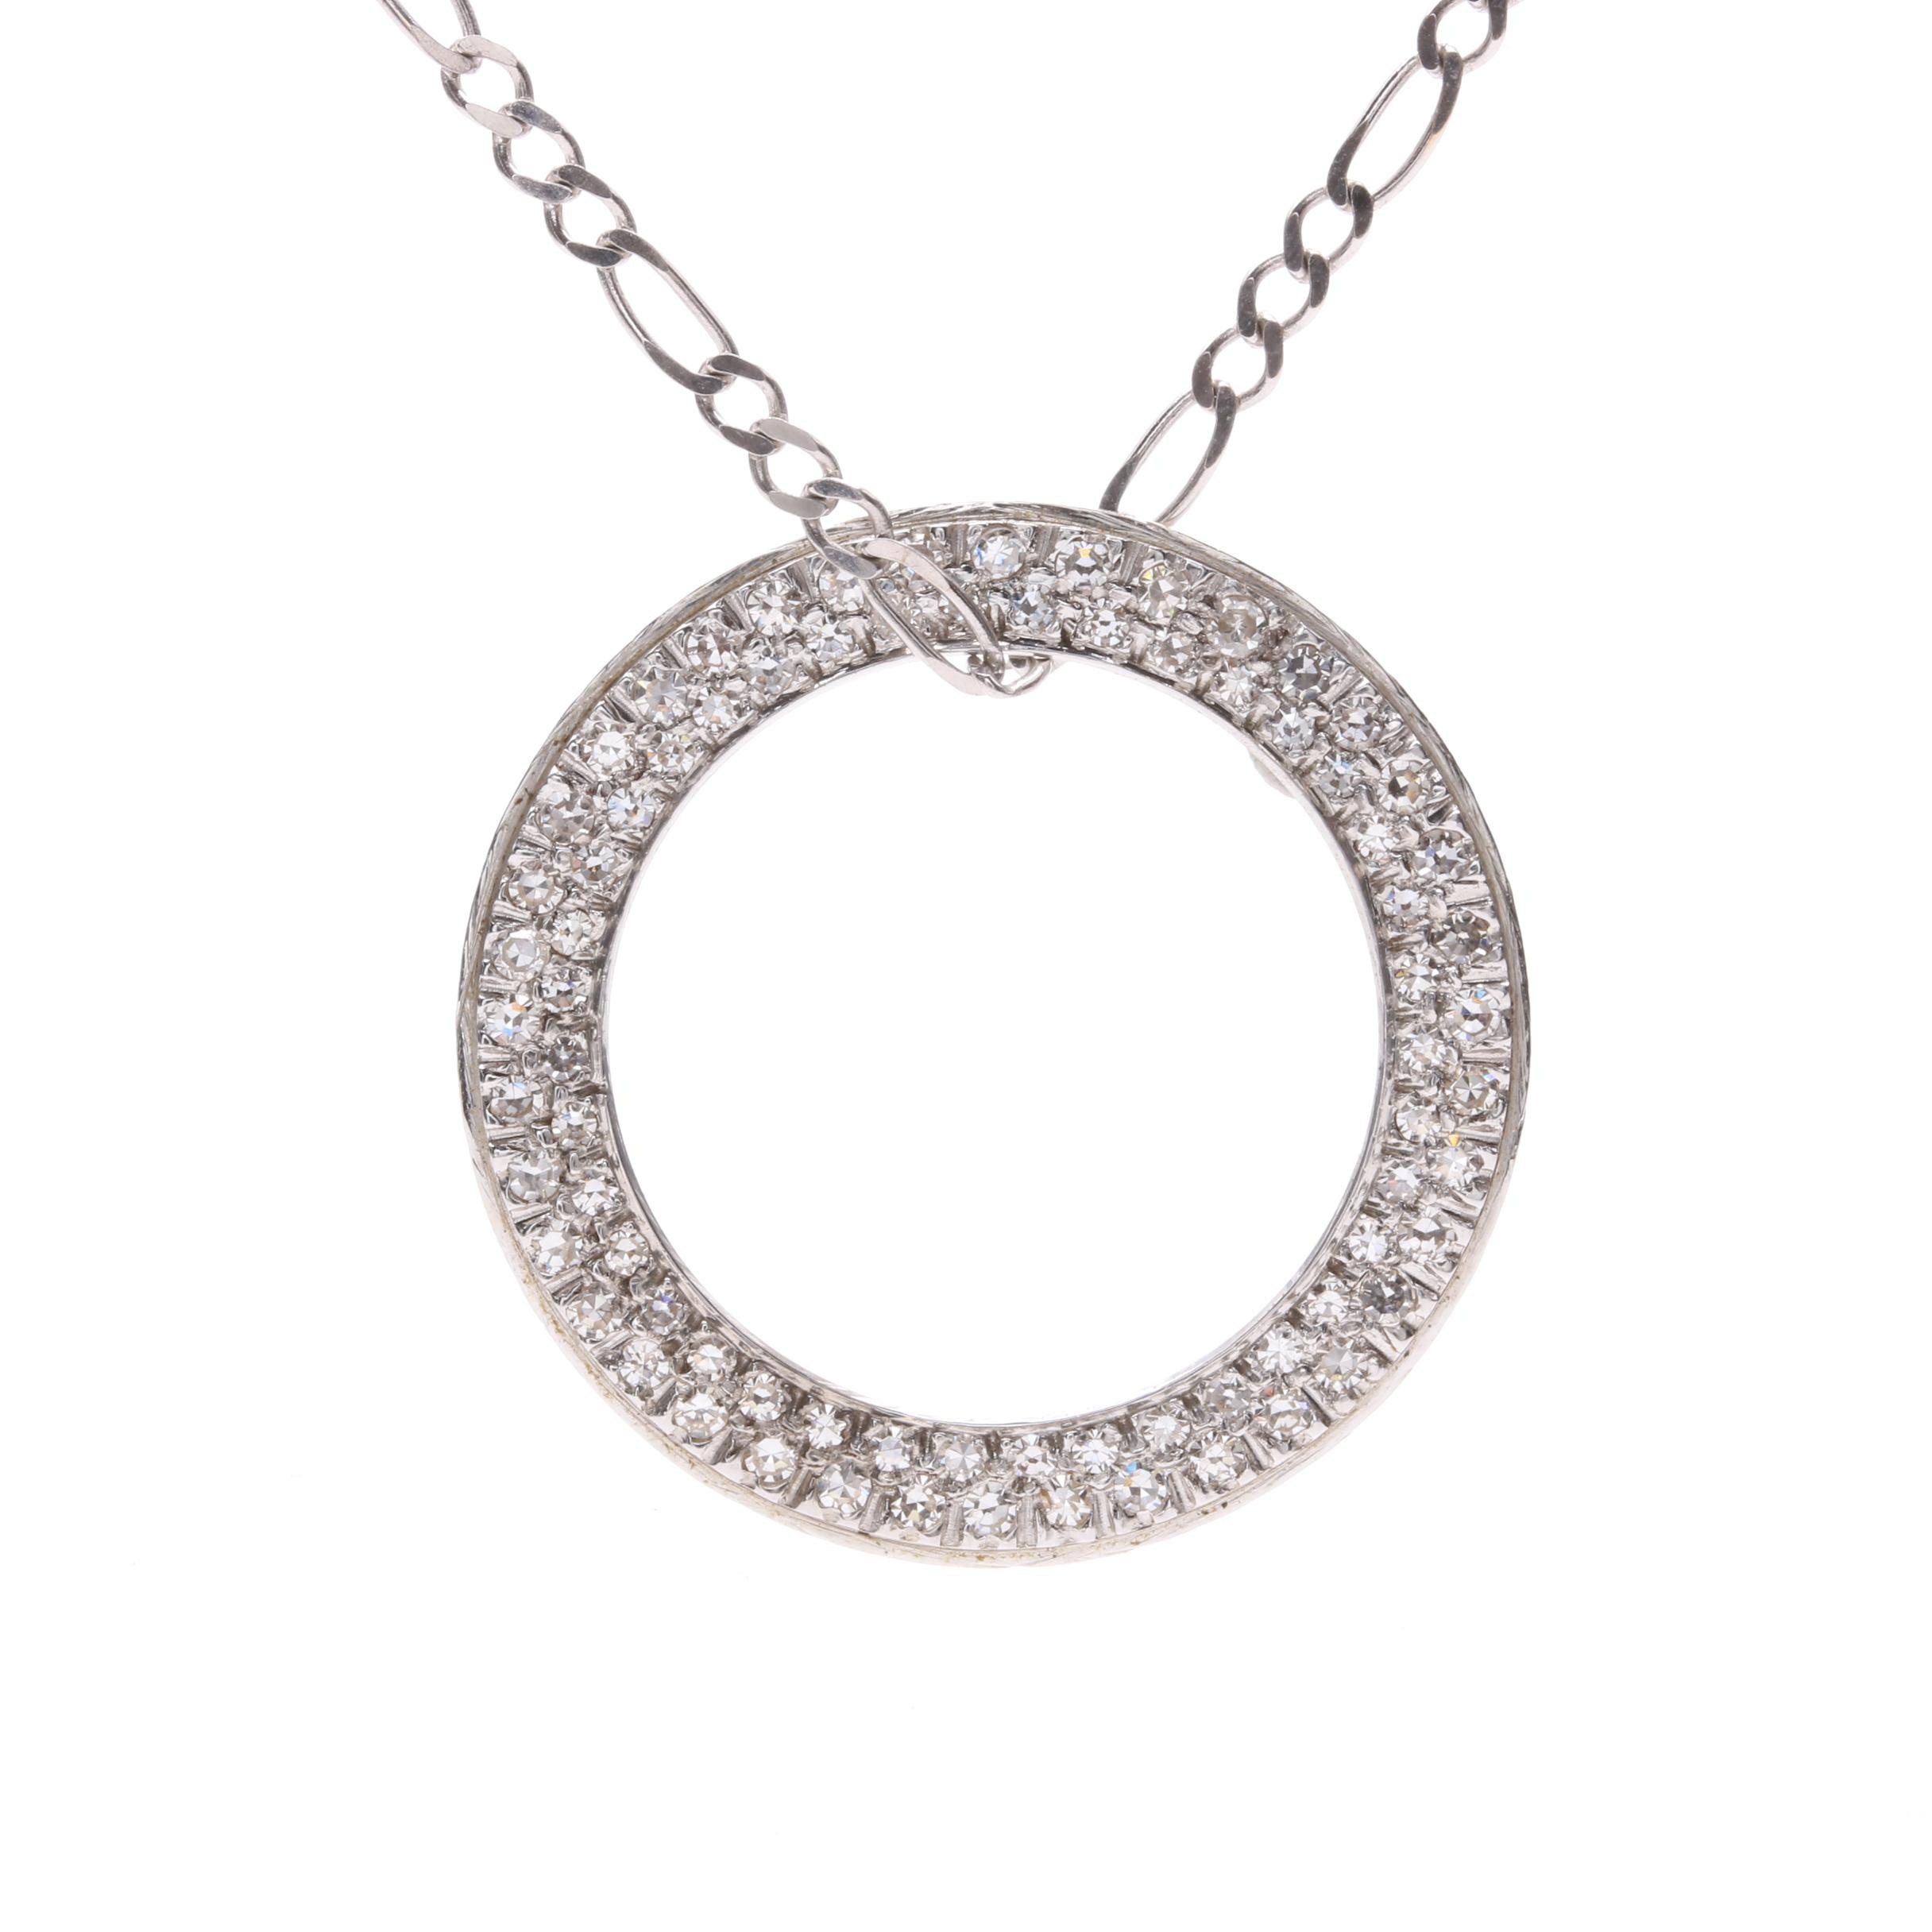 10K and 14K White Gold Diamond Pendant Necklace